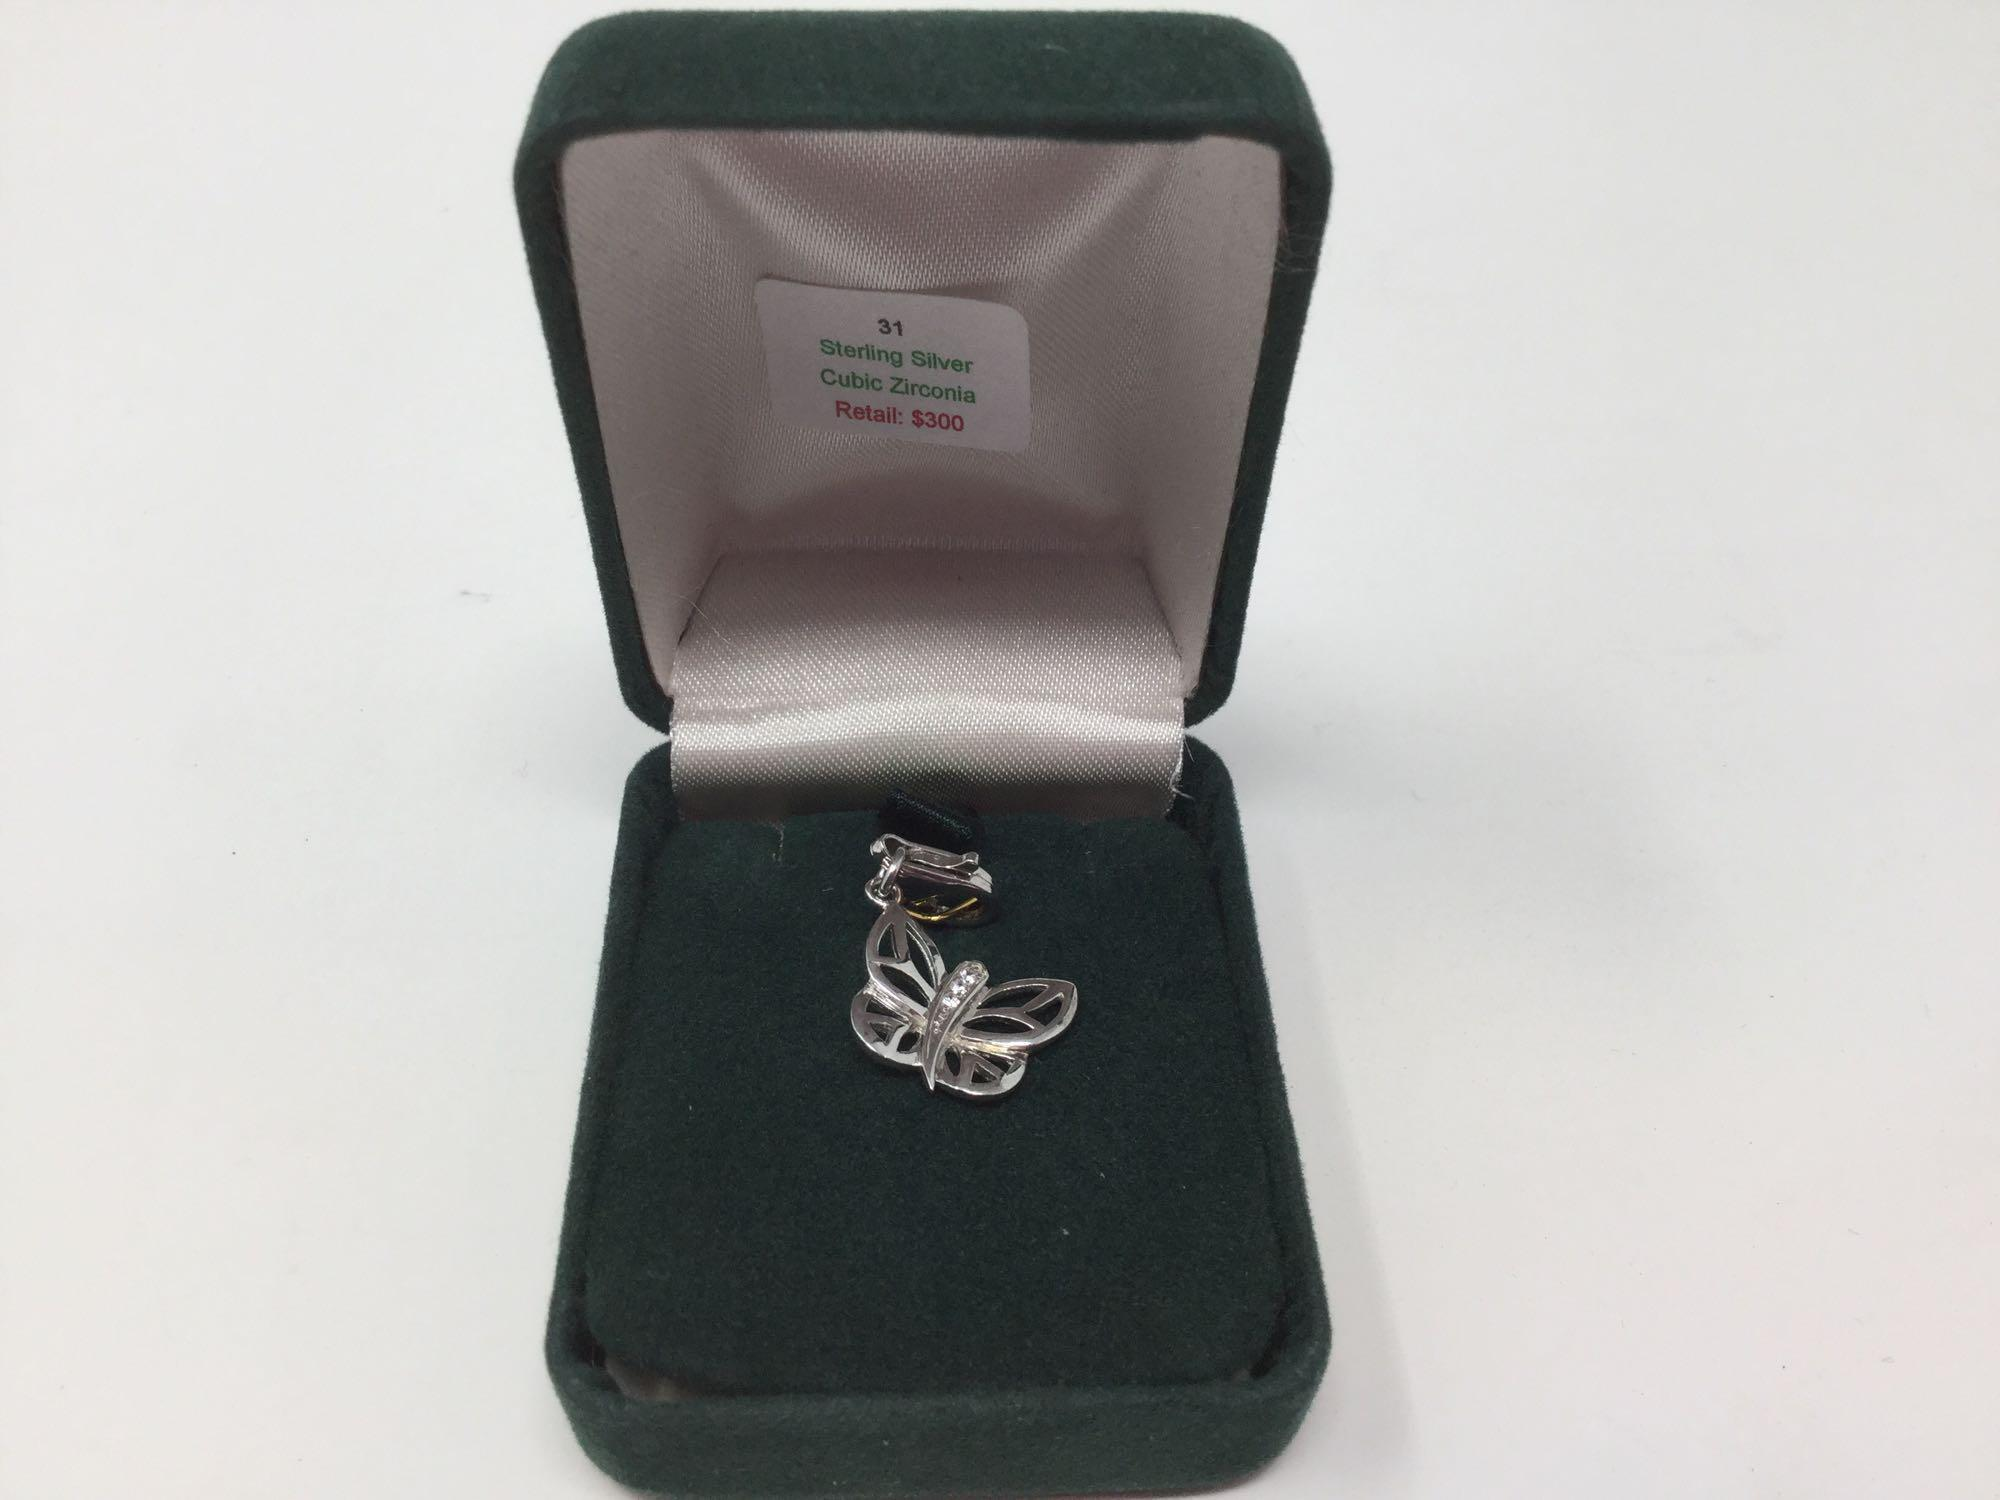 Lot 14 - Sterling Silver Cubic Zirconia Butterfly Pendant - Retail $300